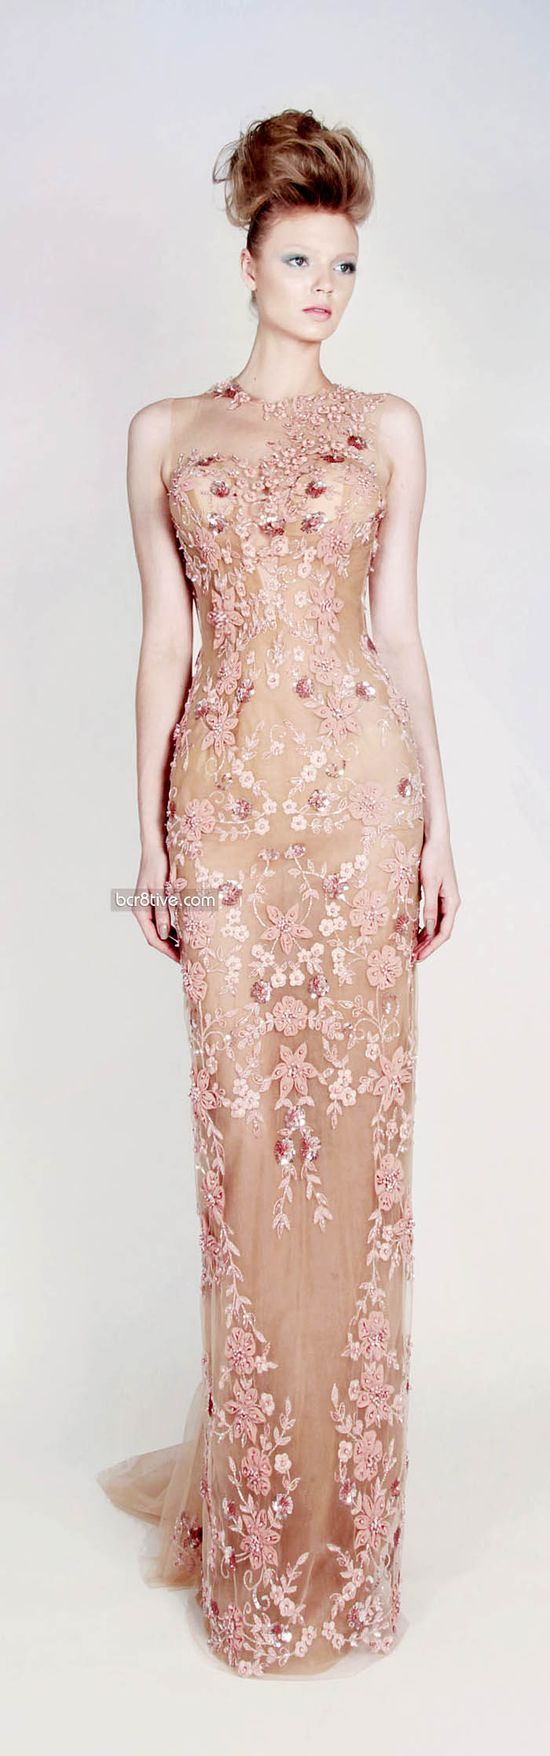 234 best Haute Couture images on Pinterest | Guo pei, Ethnic fashion ...